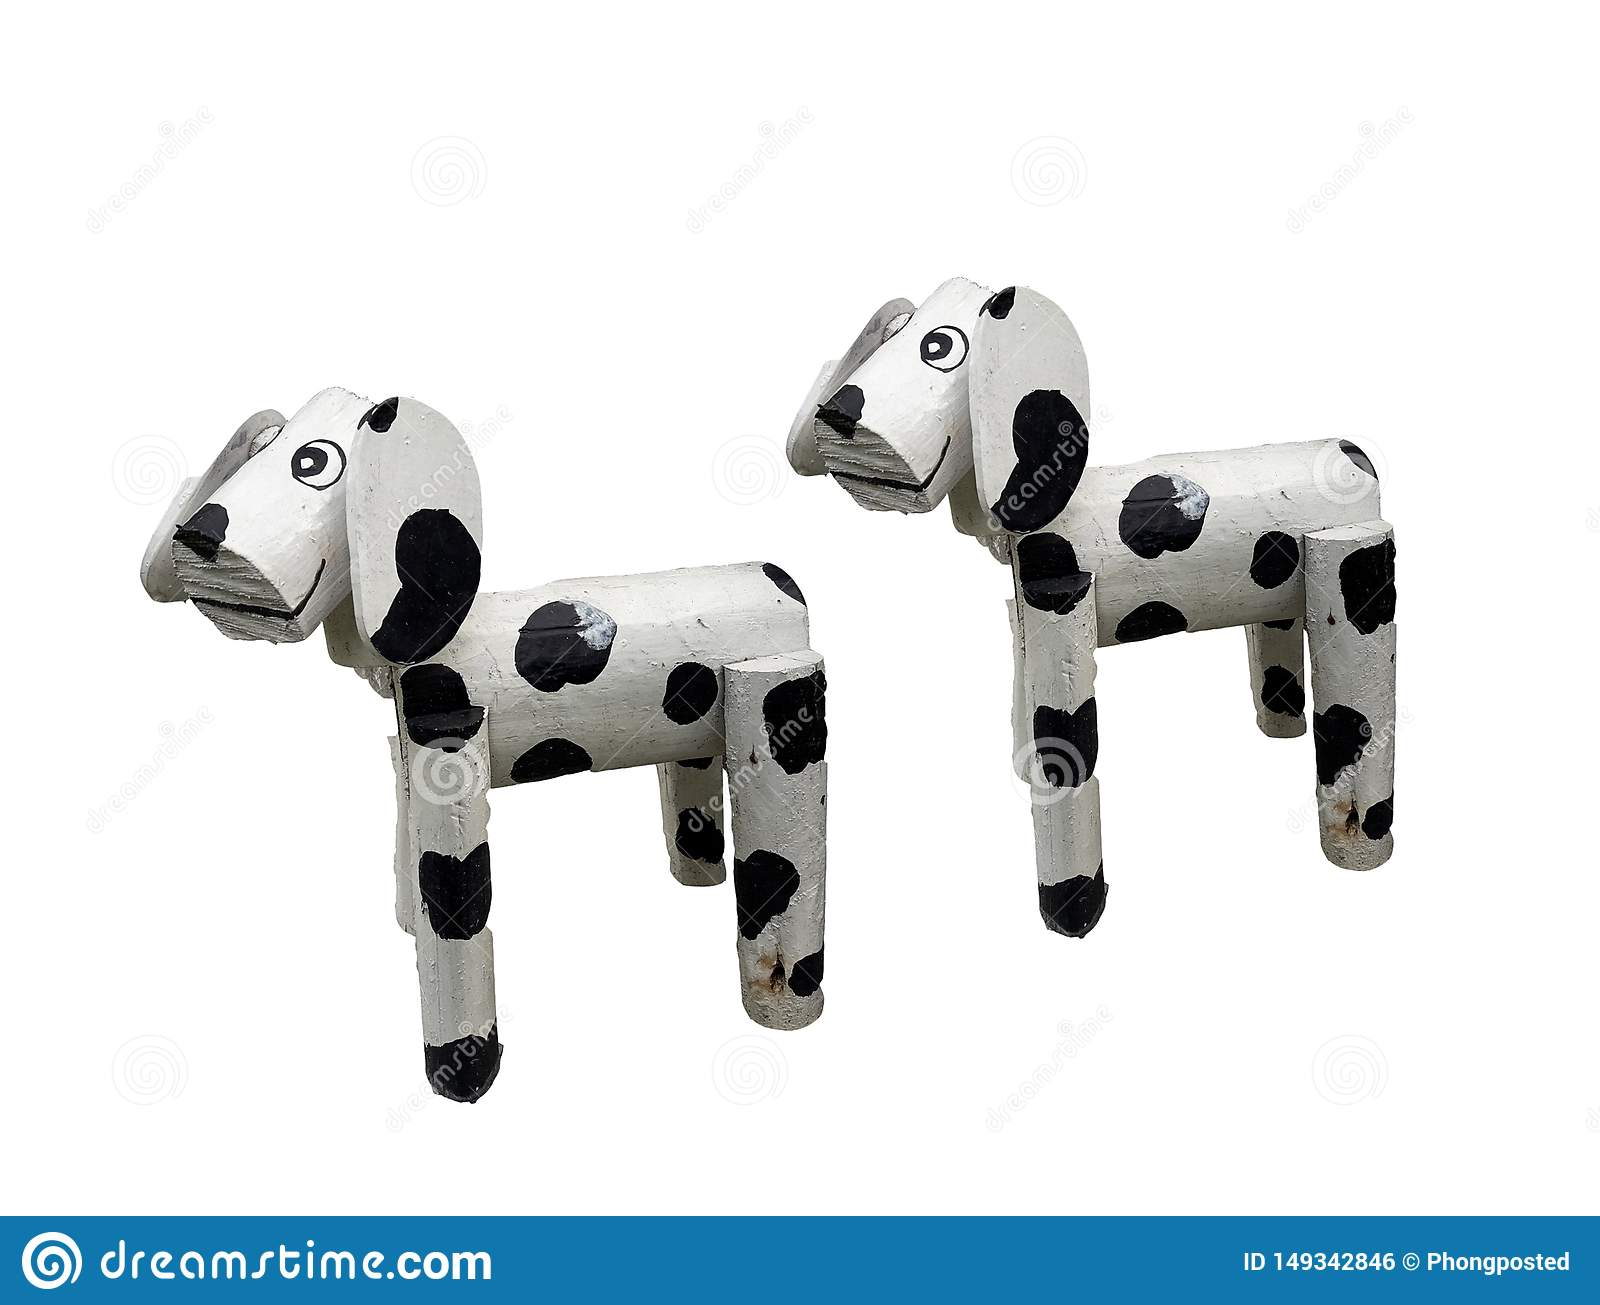 Two of litle wooden dogs white mixed black colored standind isolated on white background